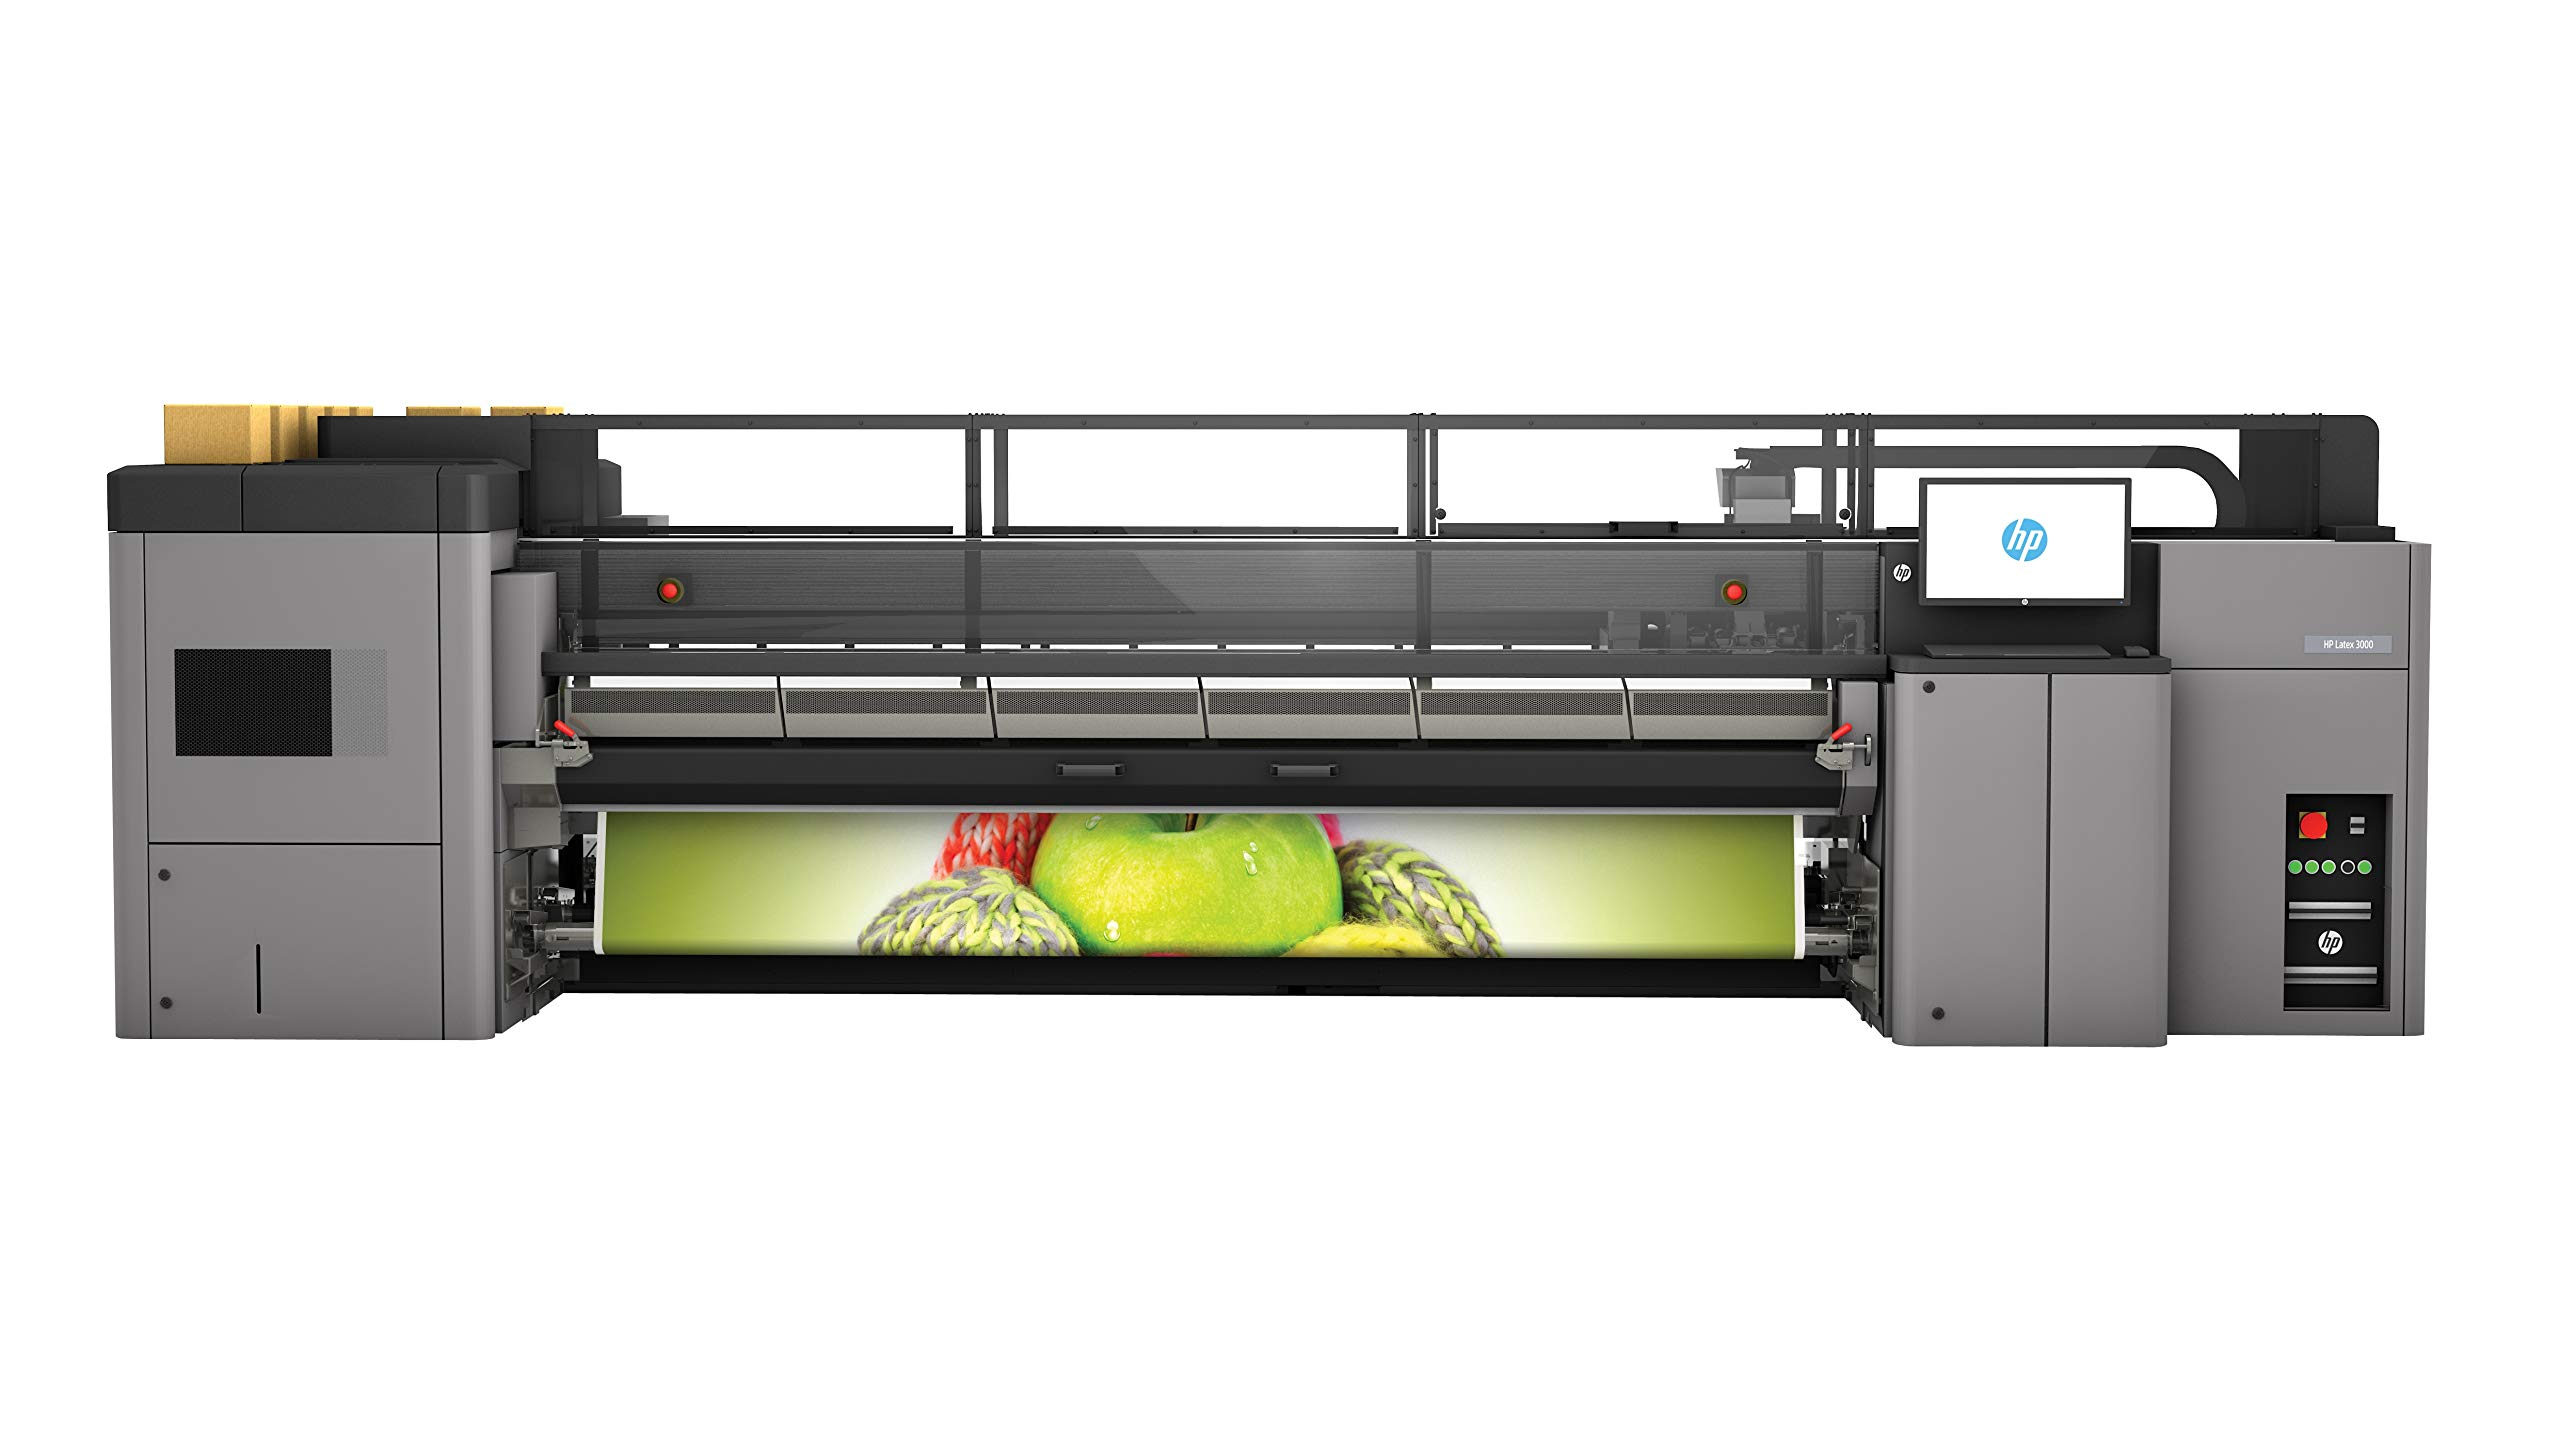 HP Latex 3000 - Plotter, gris: Amazon.es: Informática